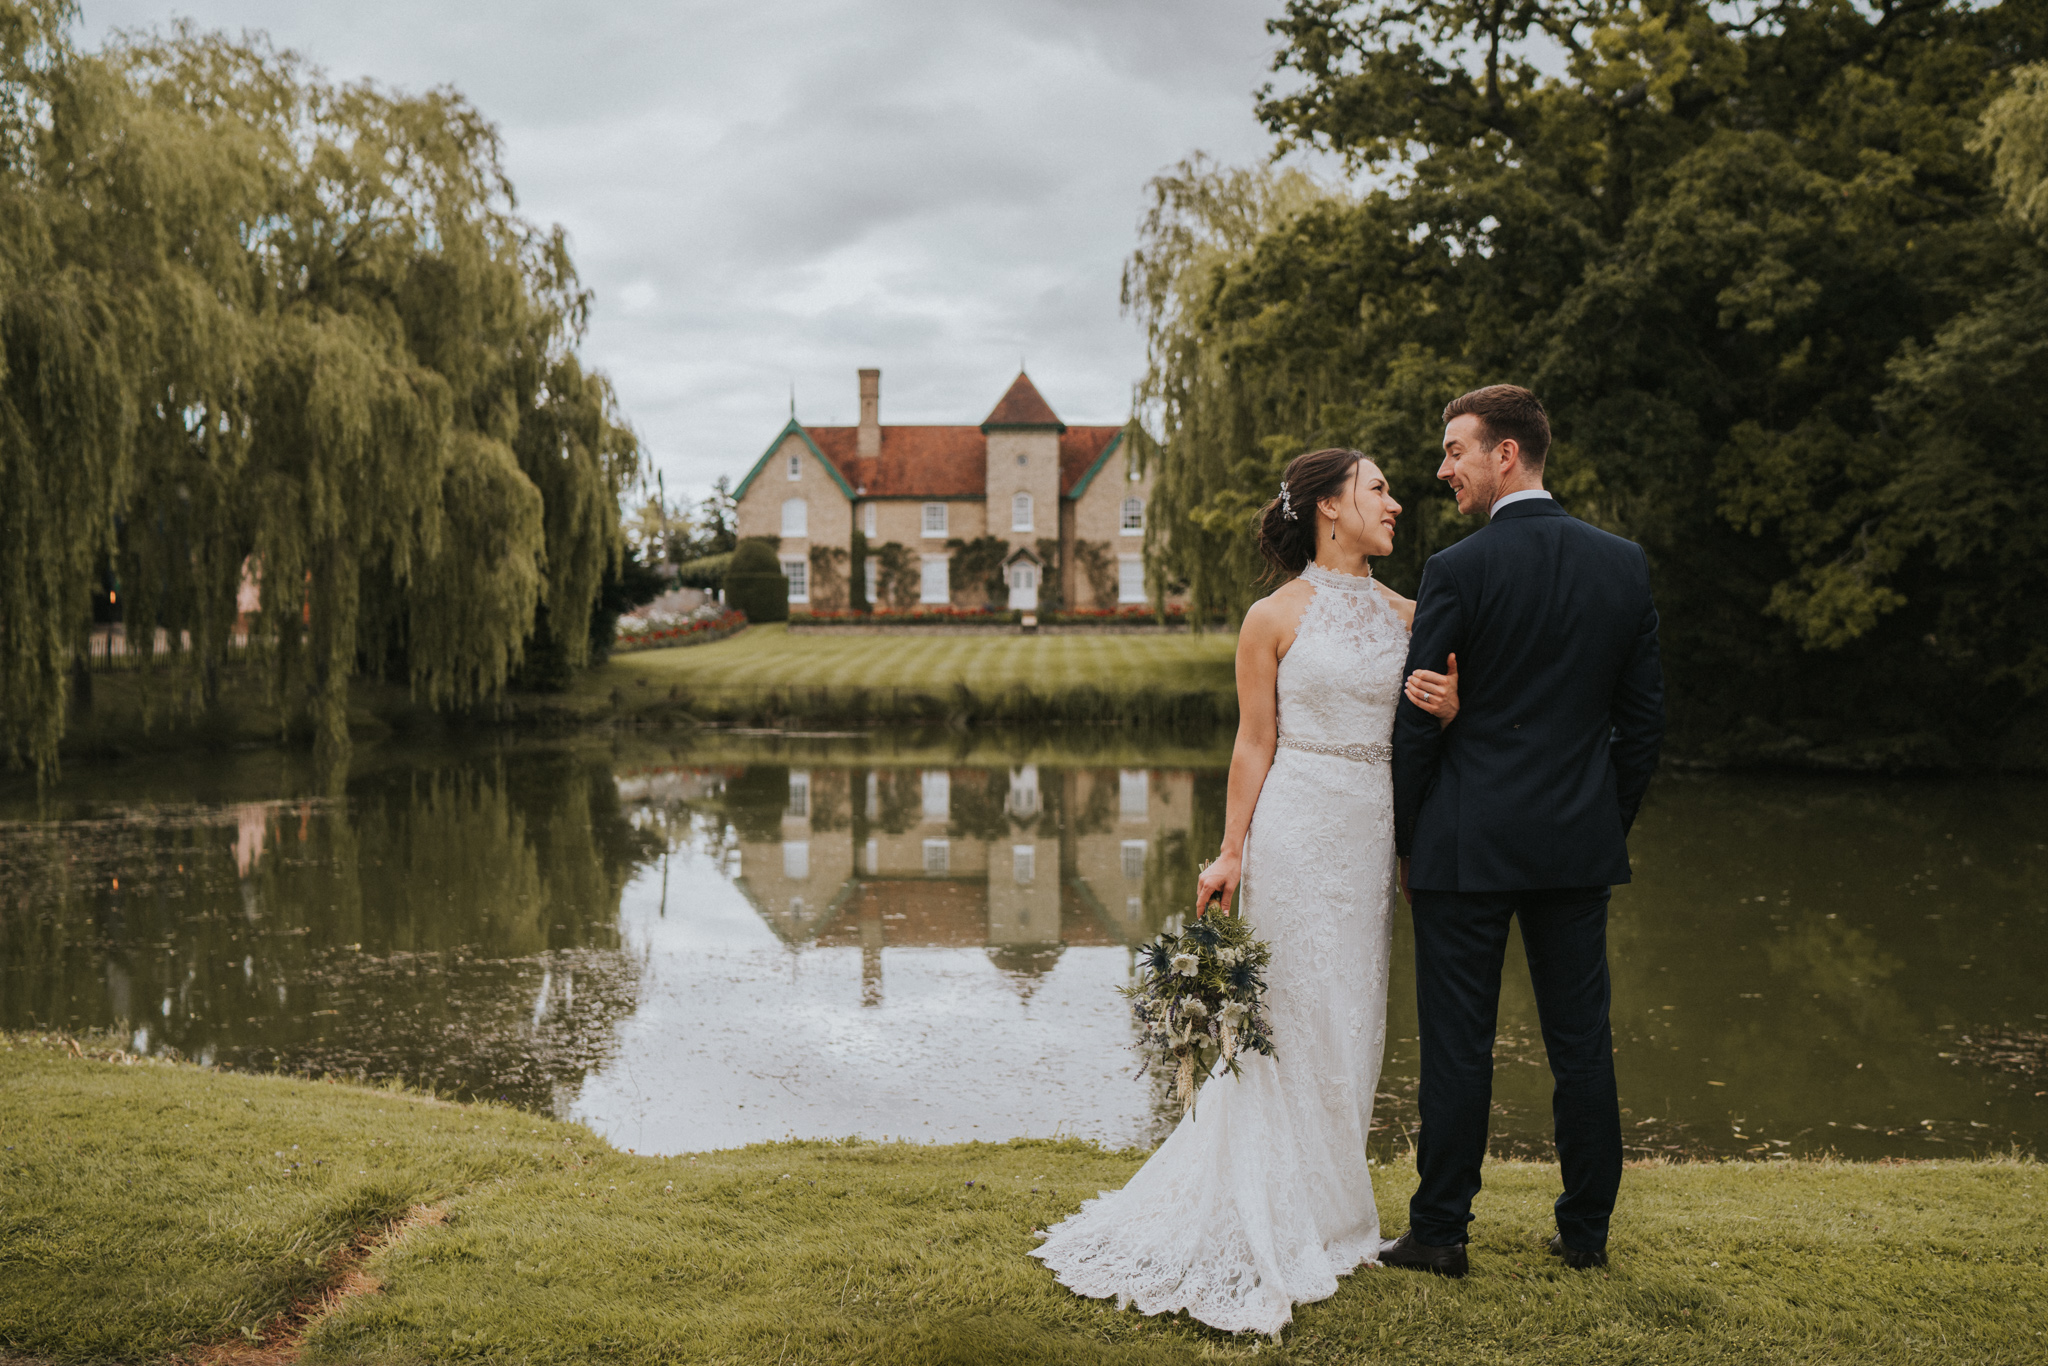 jane-patrick-smeetham-hall-barn-grace-elizabeth-colchester-essex-alternative-wedding-lifestyle-photographer-essex-suffolk-norfolk-devon (45 of 52).jpg